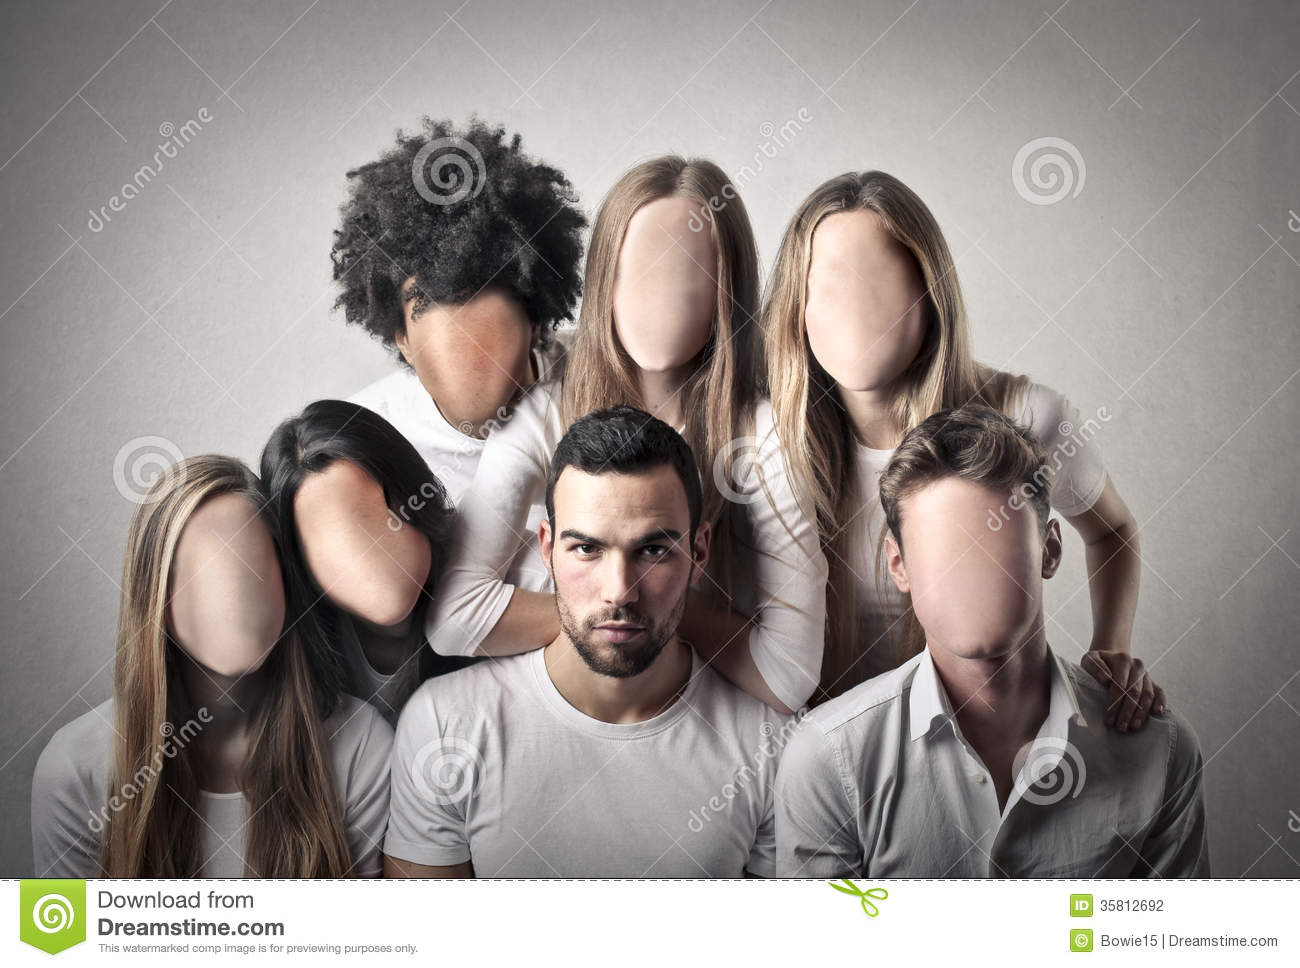 People Without Faces Stock Photography - Image 35812692-4435